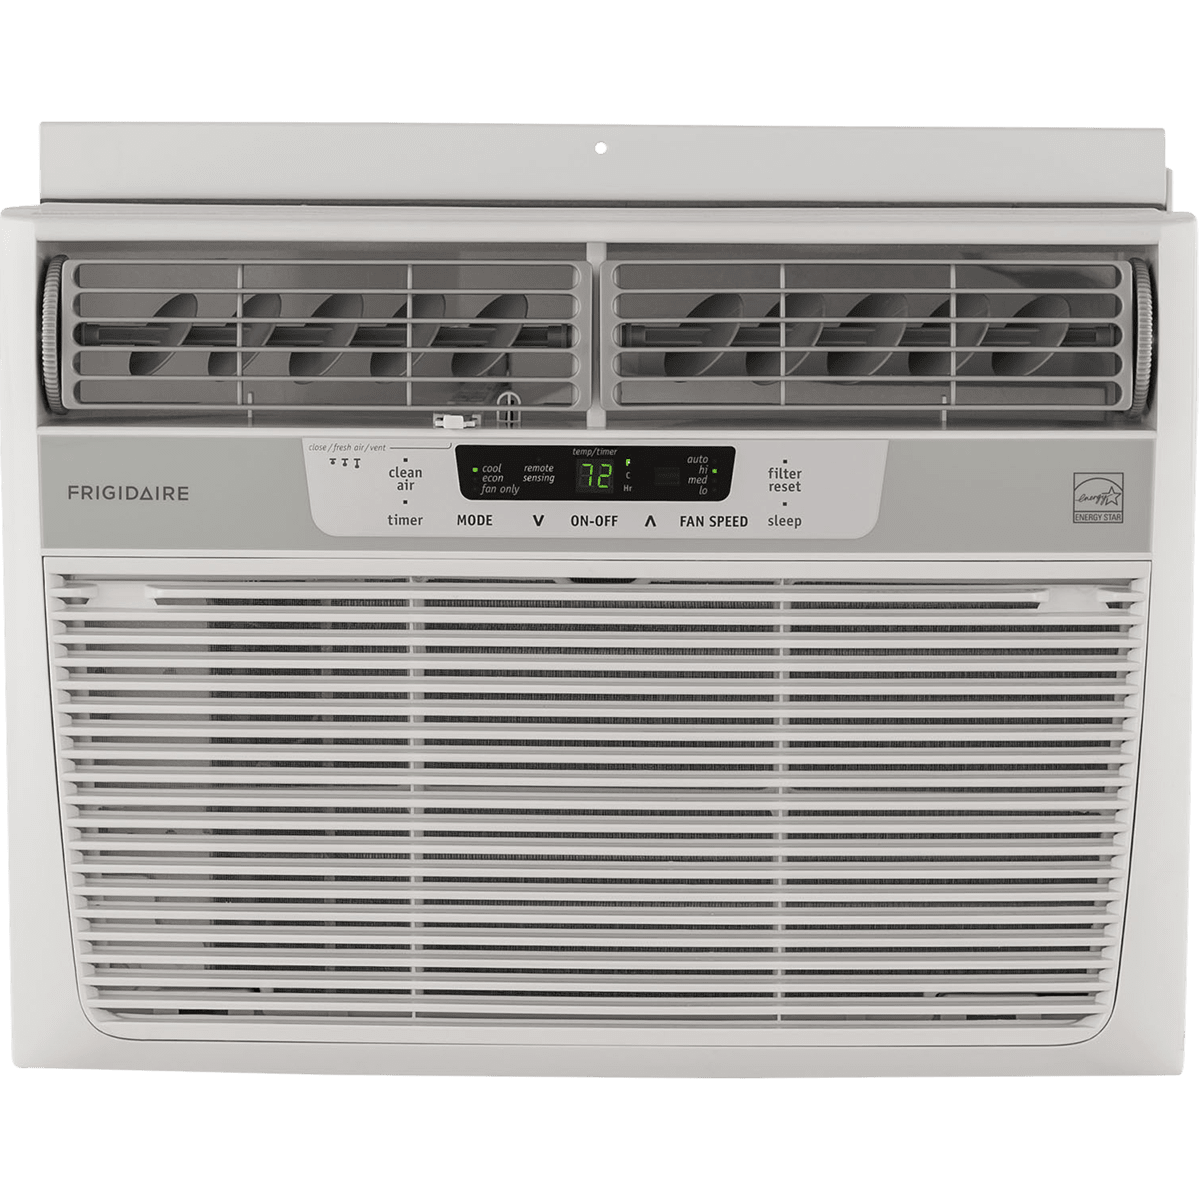 Frigidaire FFRE1033S1 10,000 BTU Window-Mounted Air Conditioner fr5377